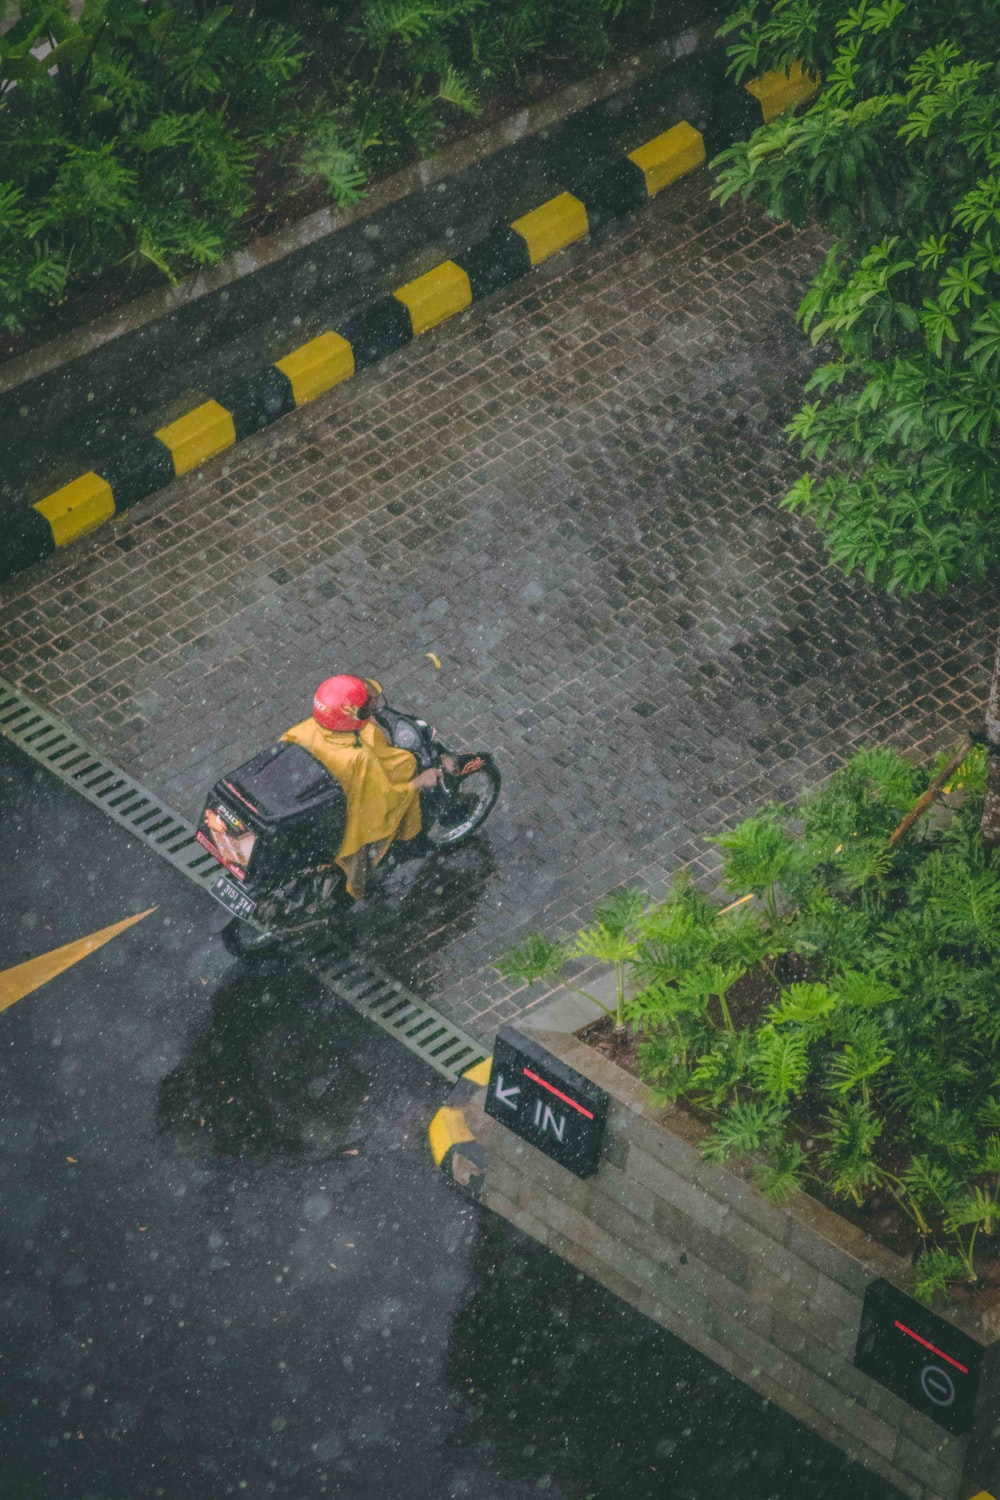 person in red helmet riding motorcycle